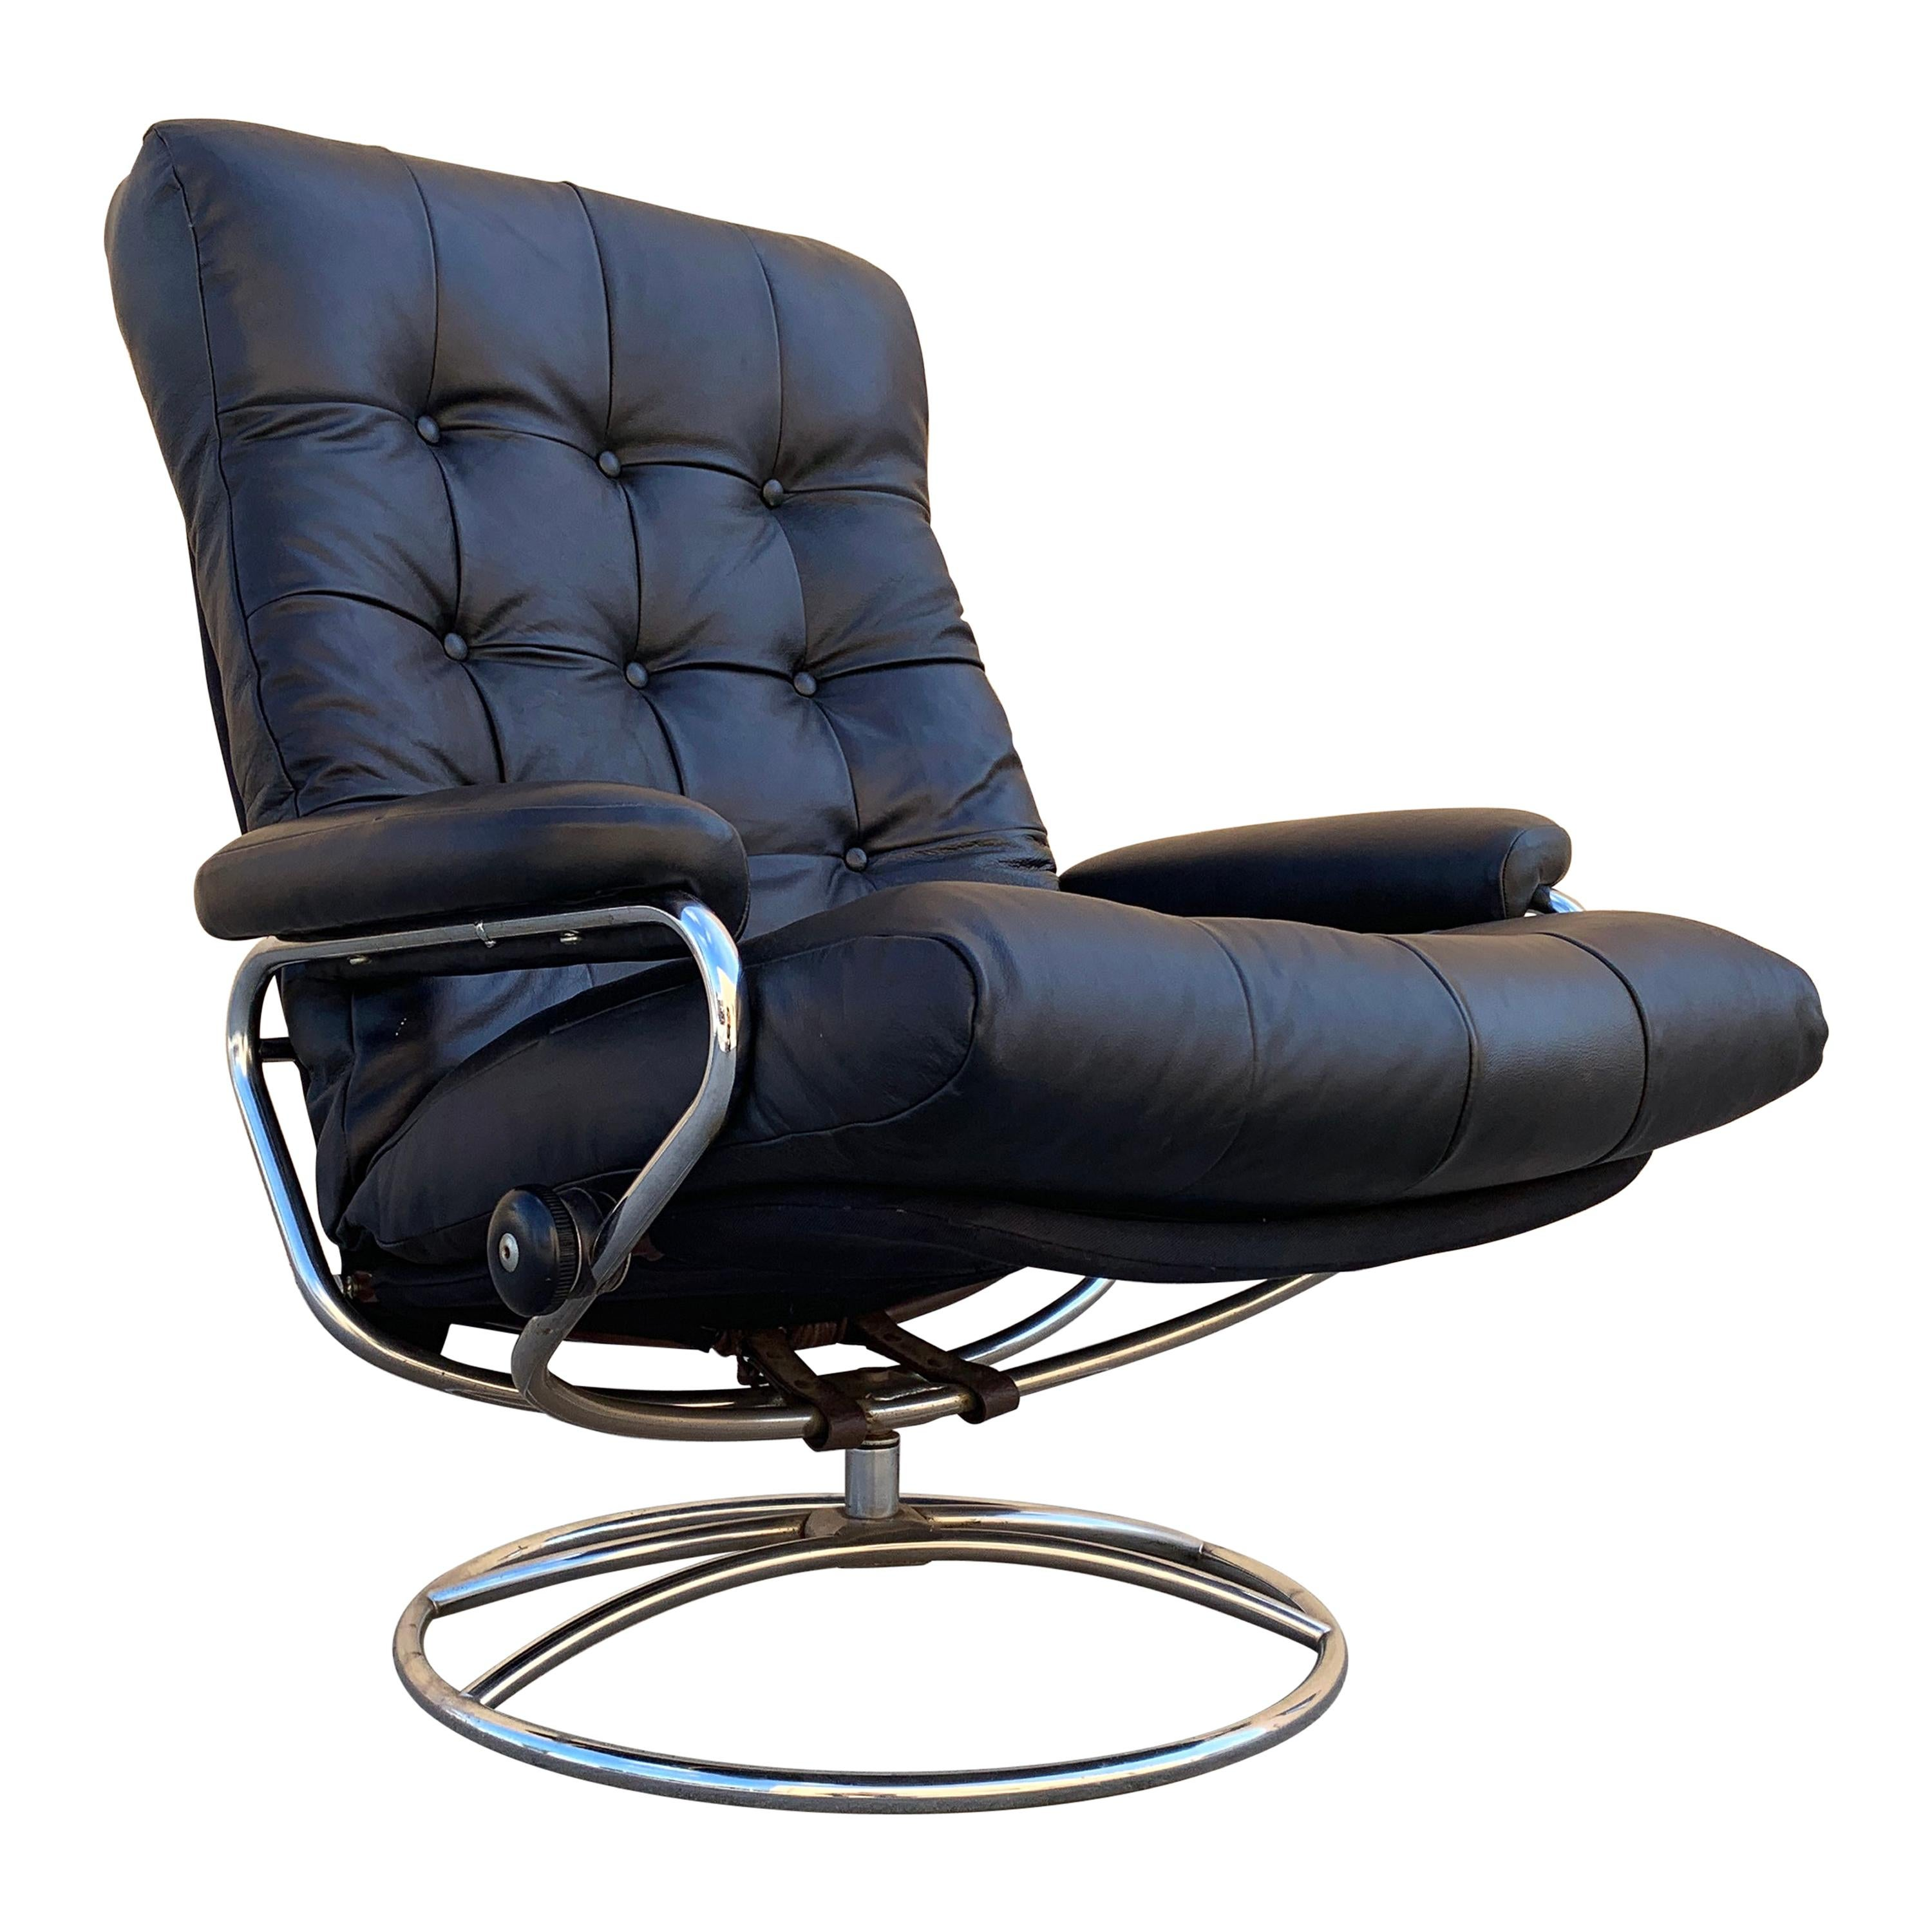 Strange Scandinavian Modern Ekornes Stressless Lounge Chair With New Leather Seat Caraccident5 Cool Chair Designs And Ideas Caraccident5Info